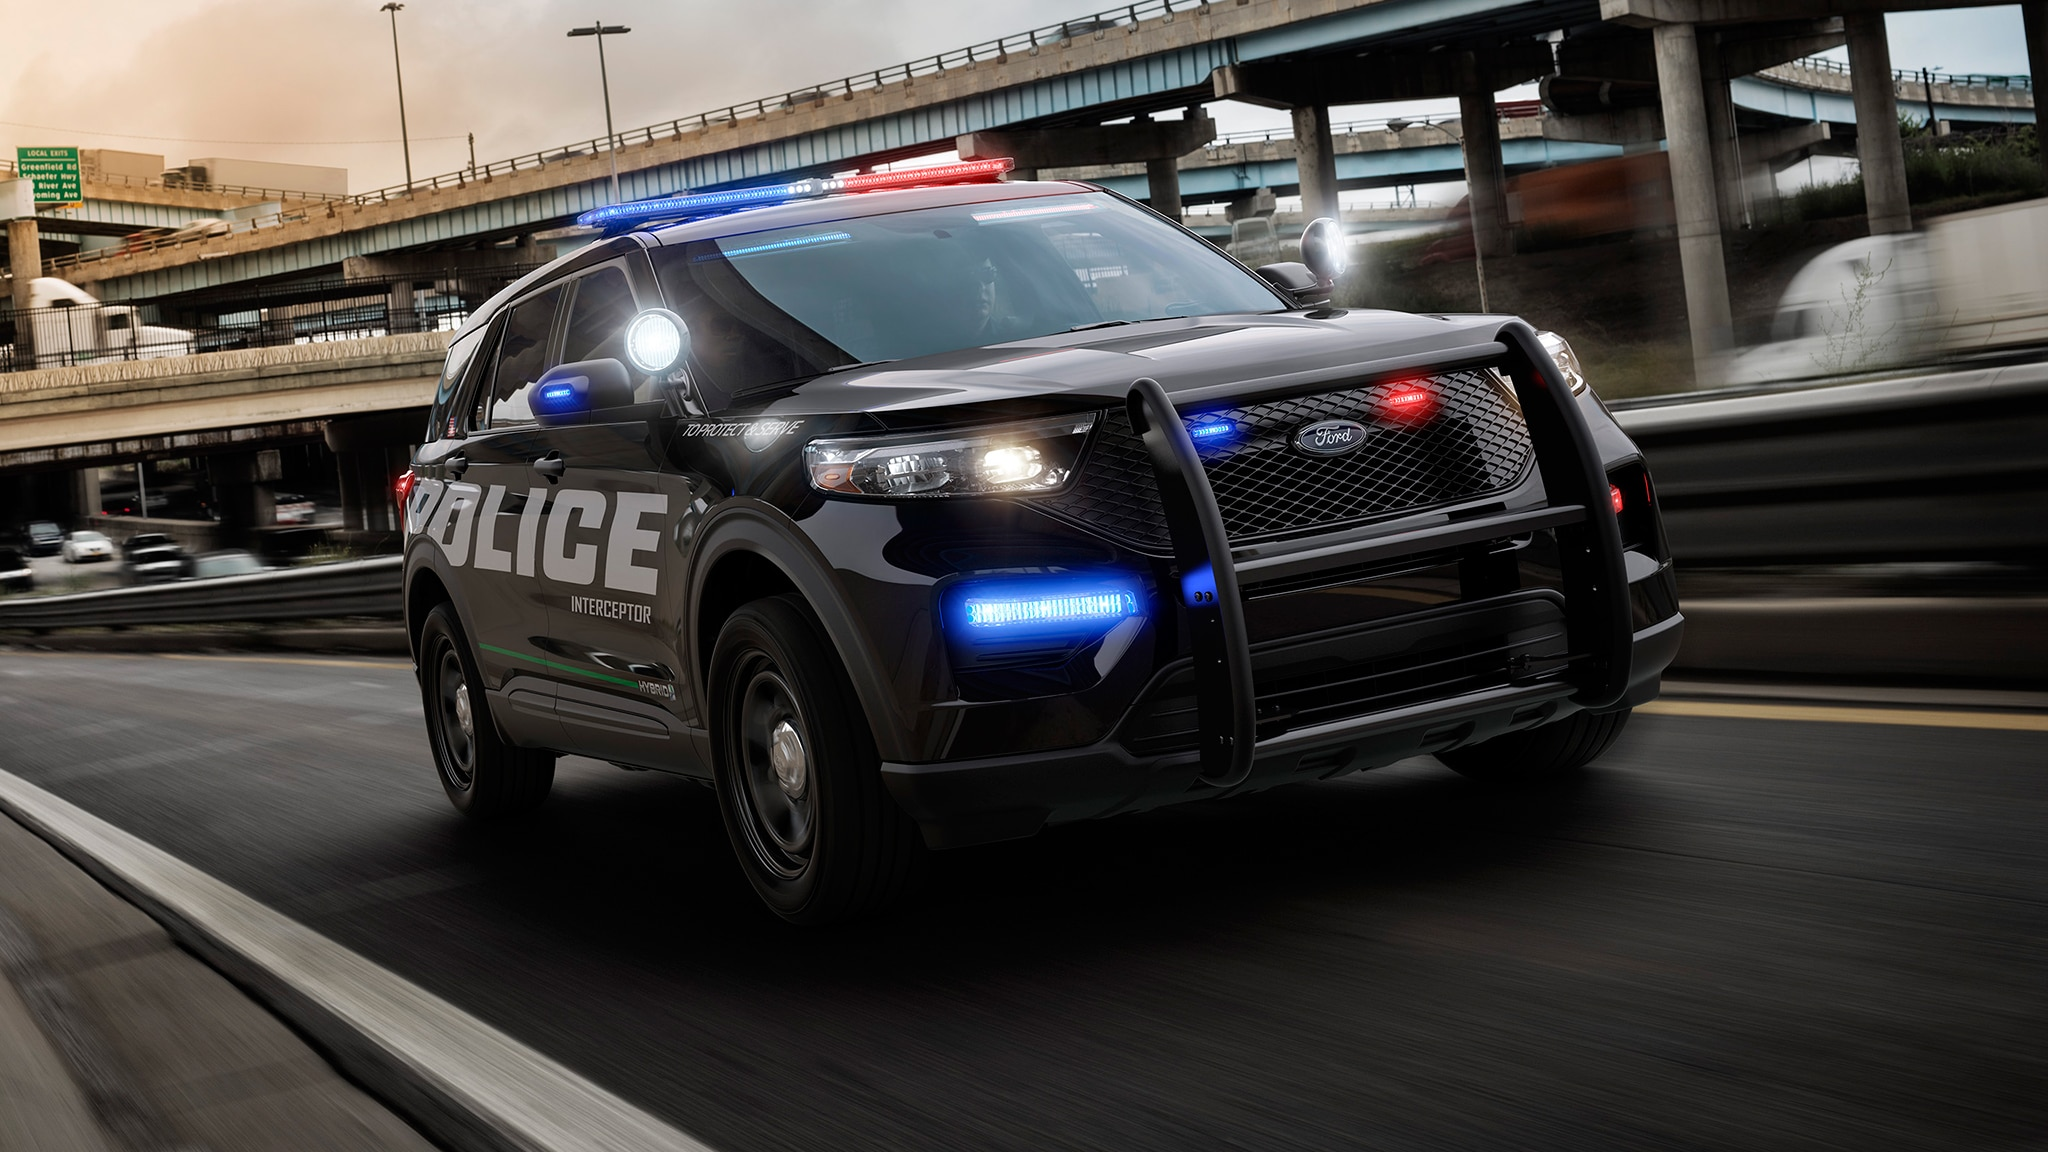 Ford Police Interceptor Utility: Everything you need to know